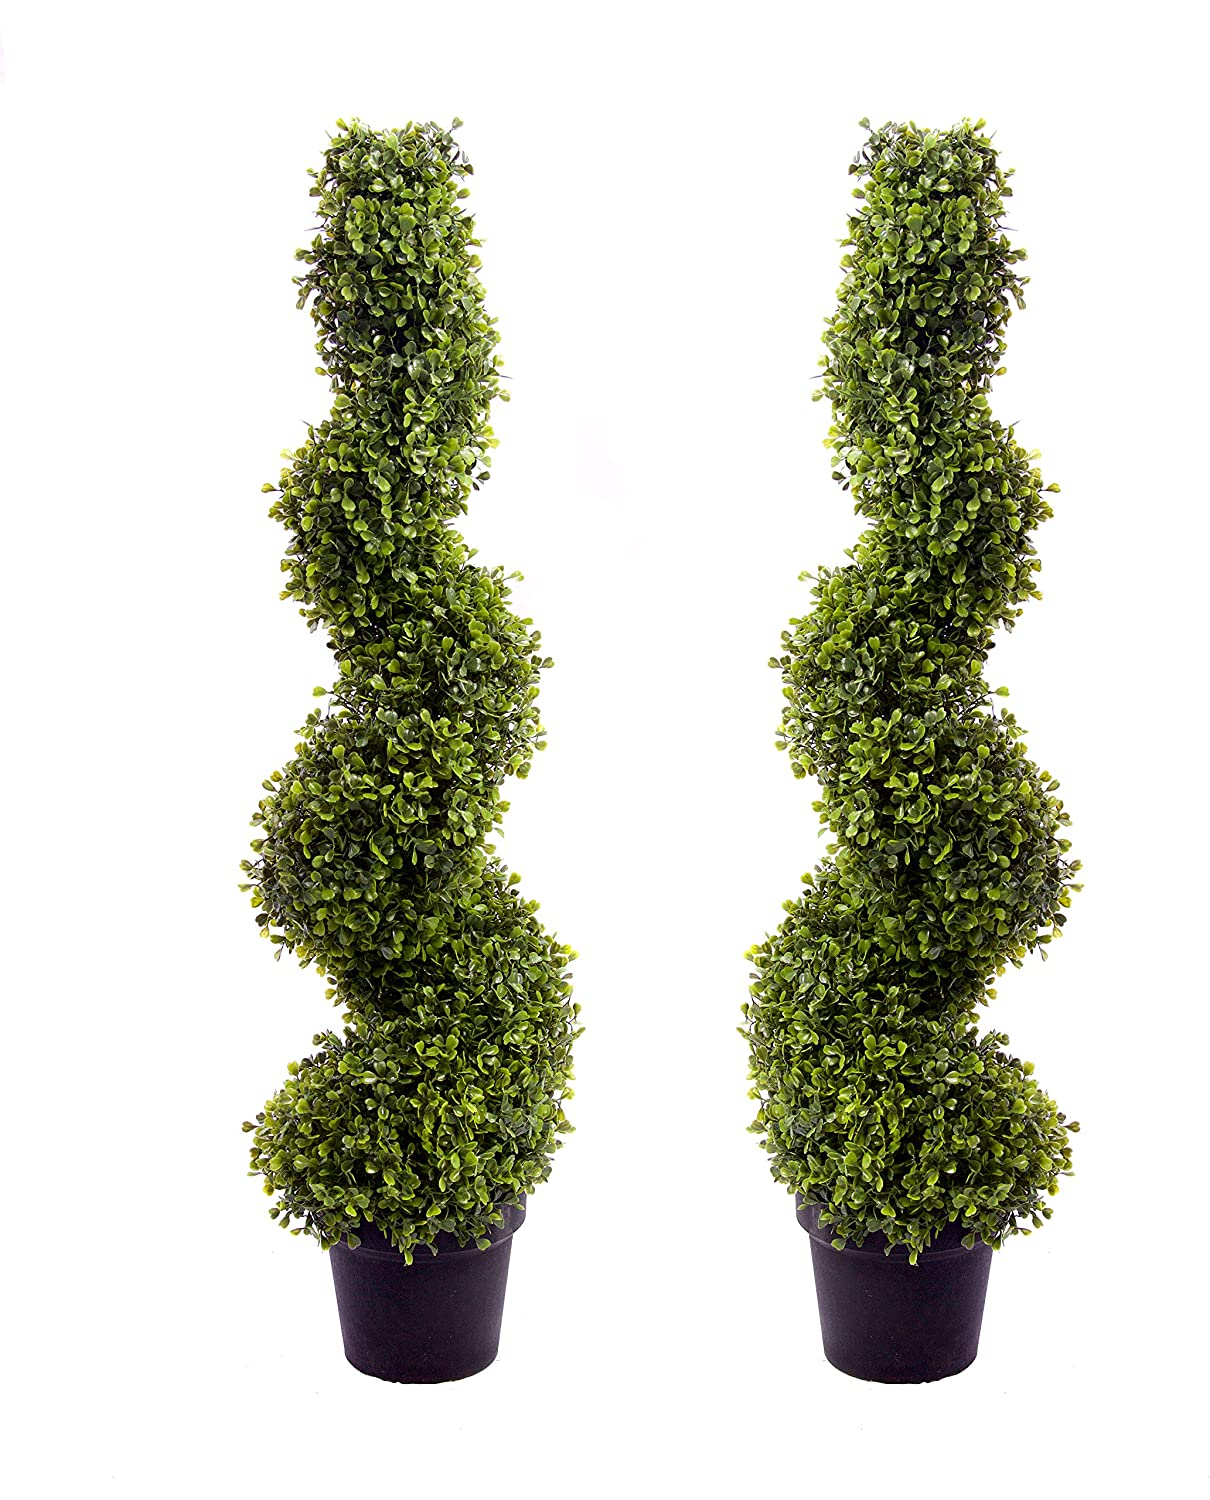 Best Artificial 2 (TM) 3ft 90cm Buxus Boxwood Spiral Topiary Trees **UV Fade Protected**